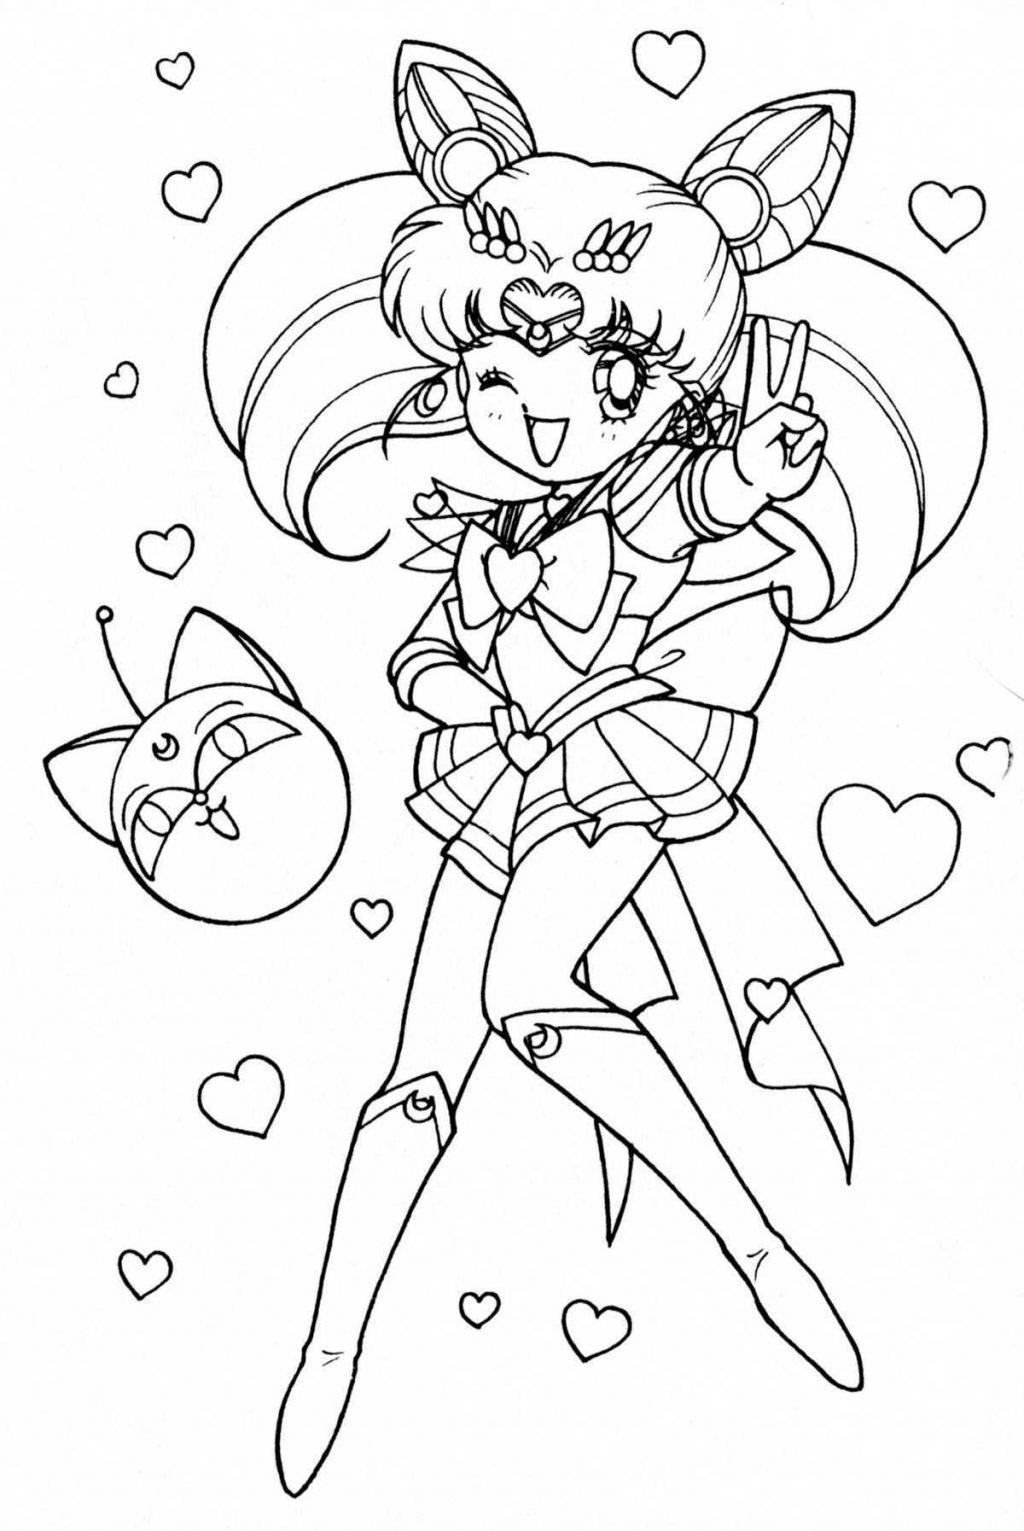 Sailor Moon Coloring Pages Coloring Pages Sailor Moon Coloring Pages The Doll Palace